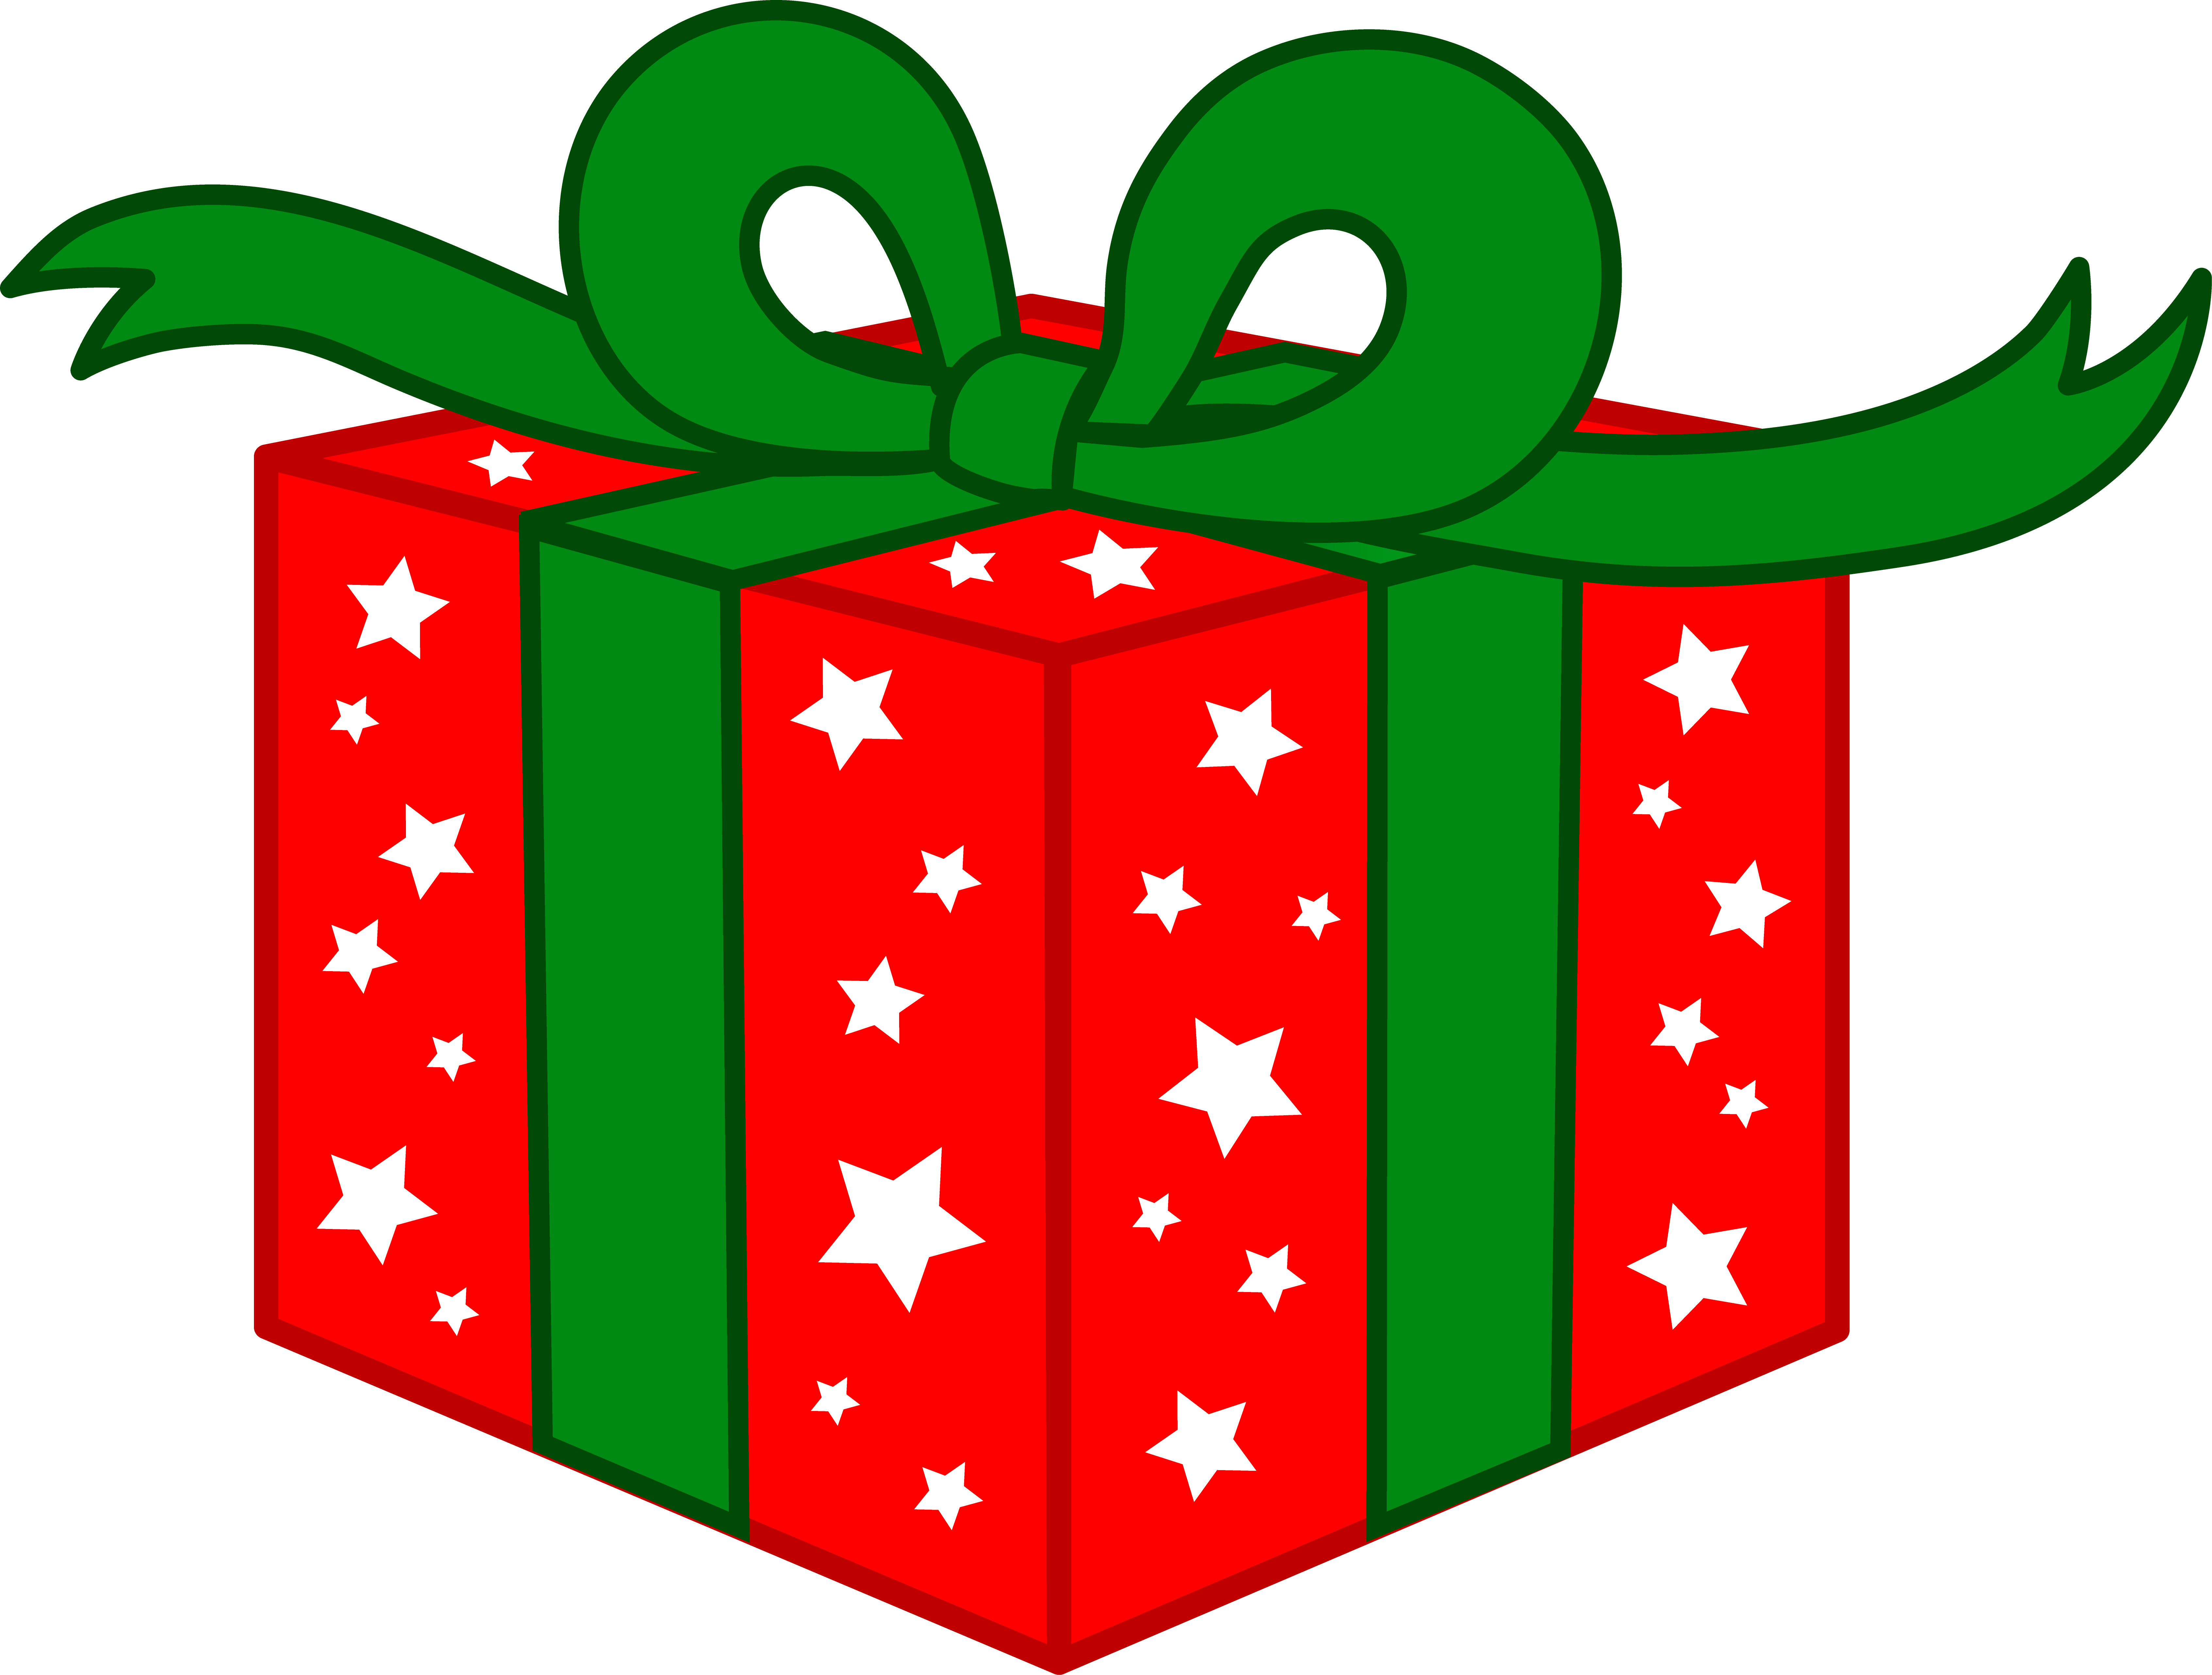 Clipart present. Christmas panda free images